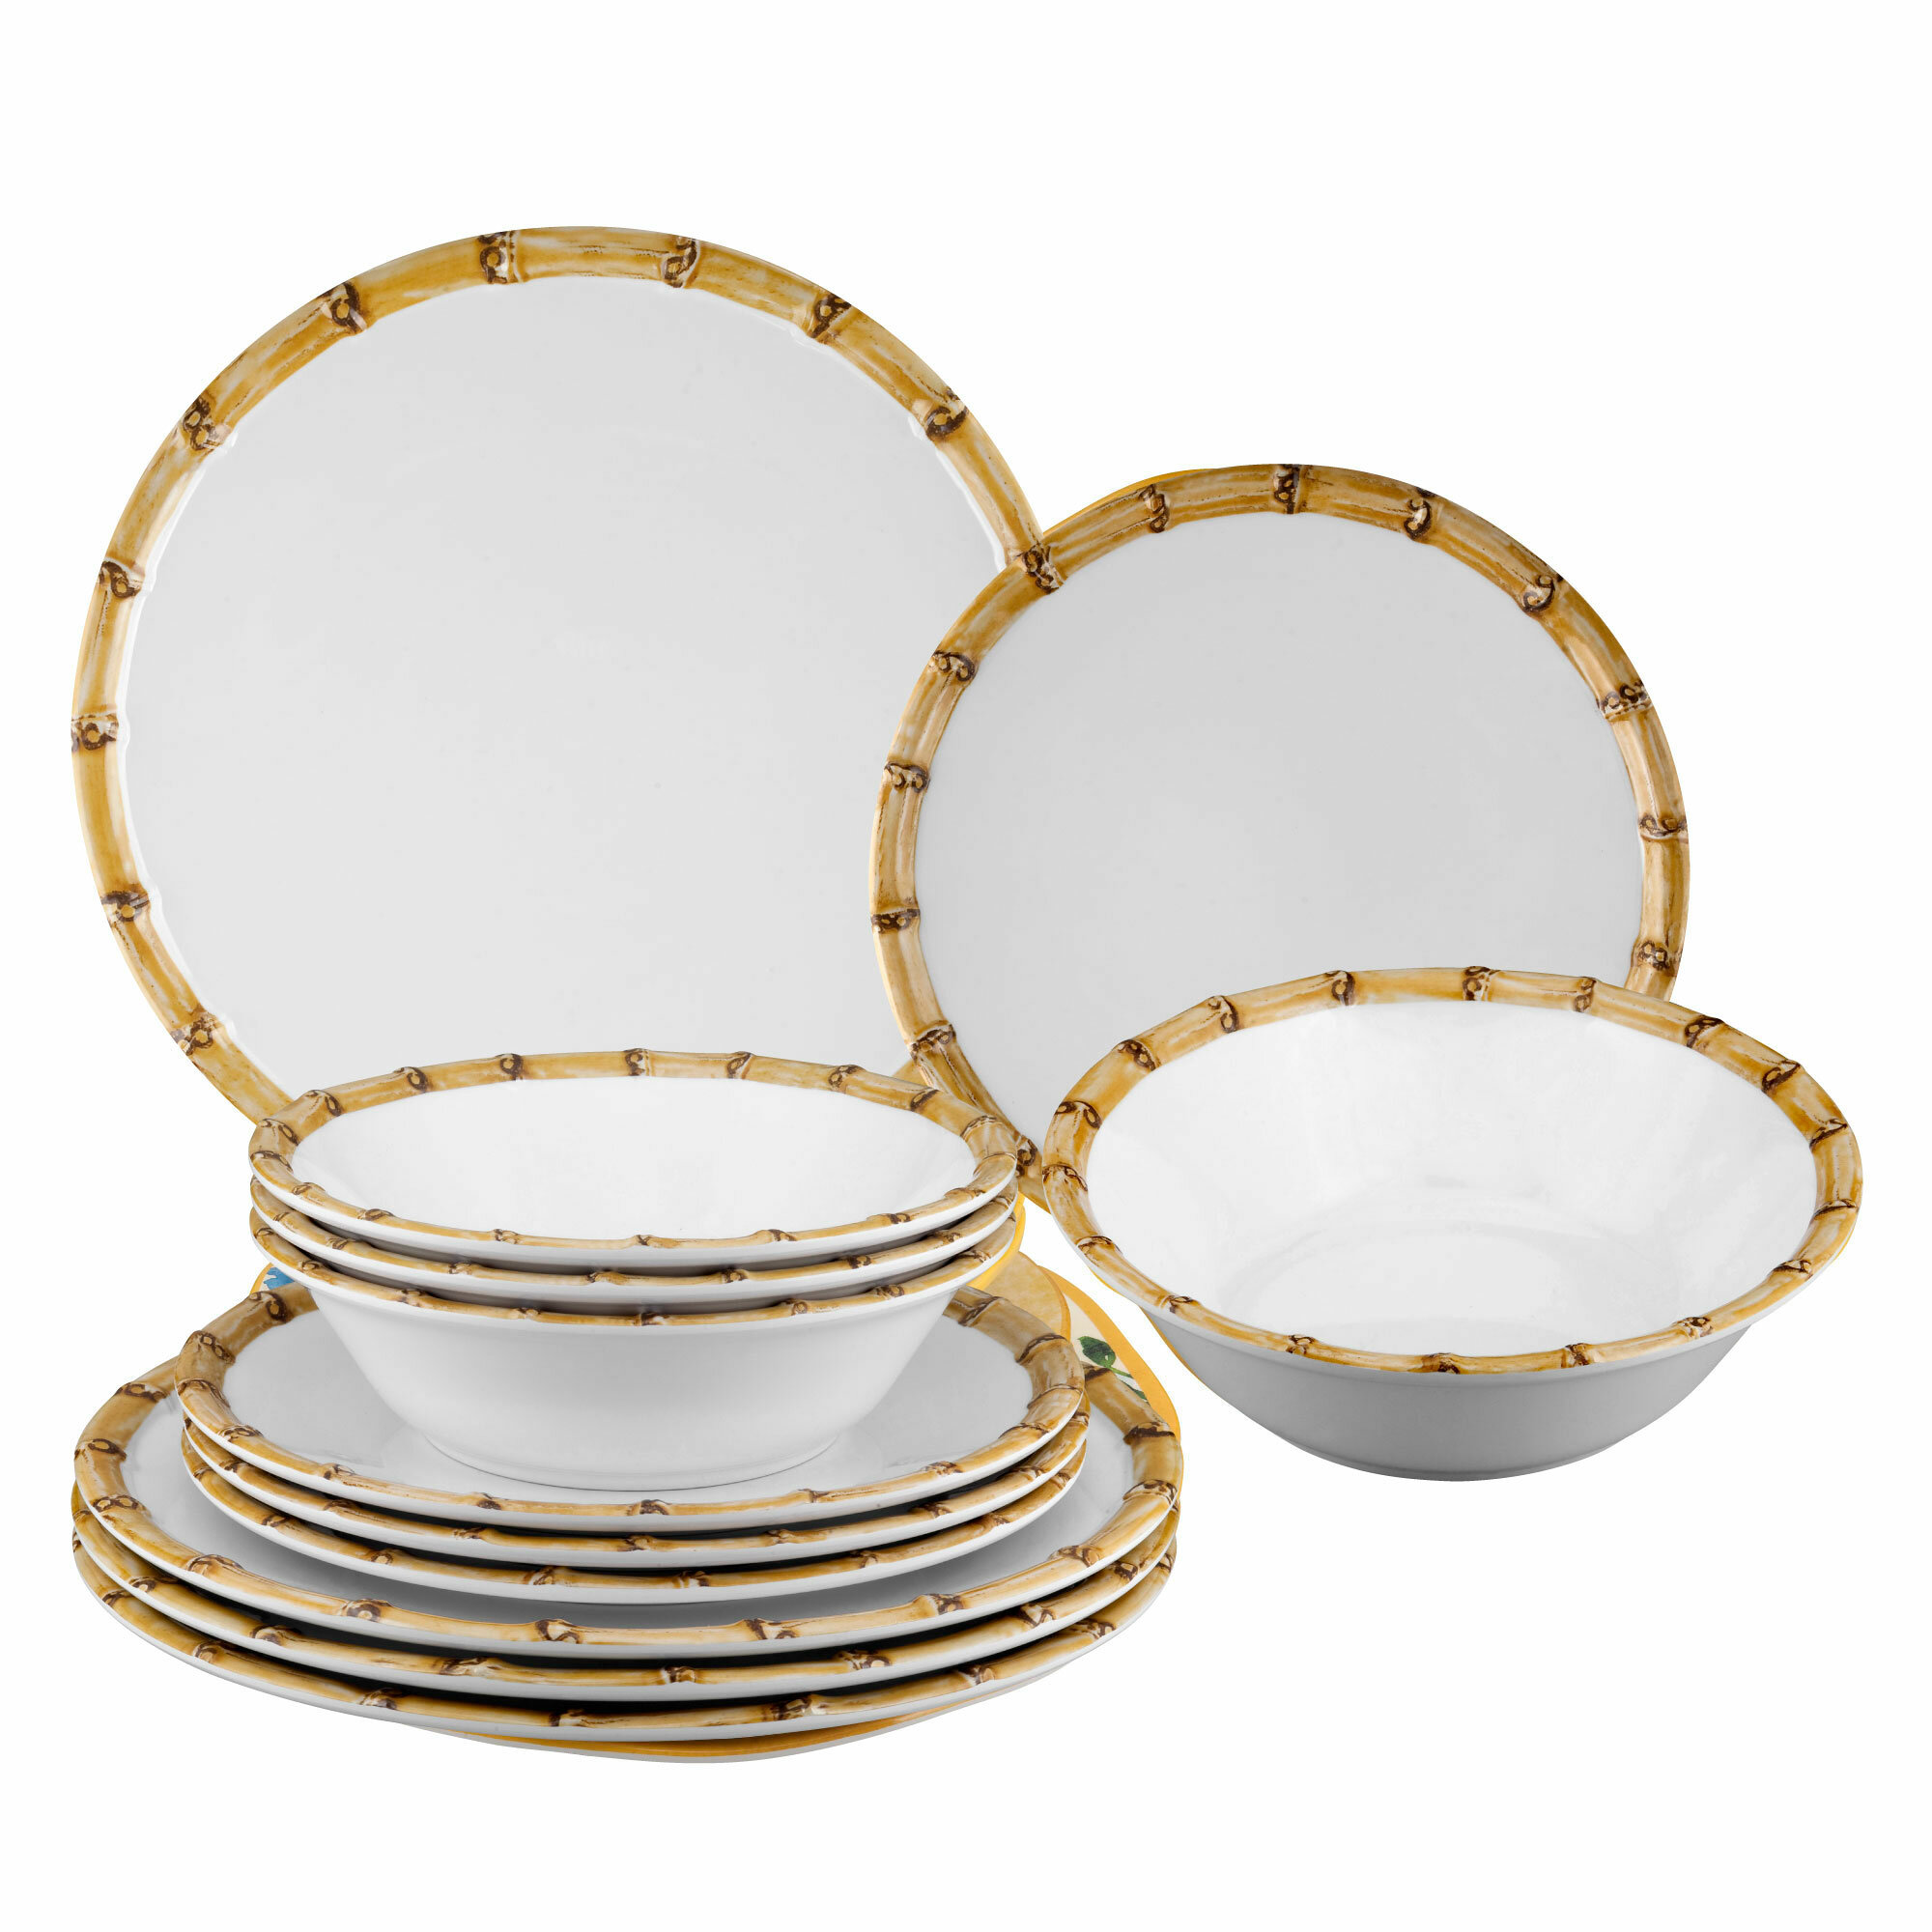 Burford Bamboo 12 Piece Melamine Dinnerware Set Service For 4